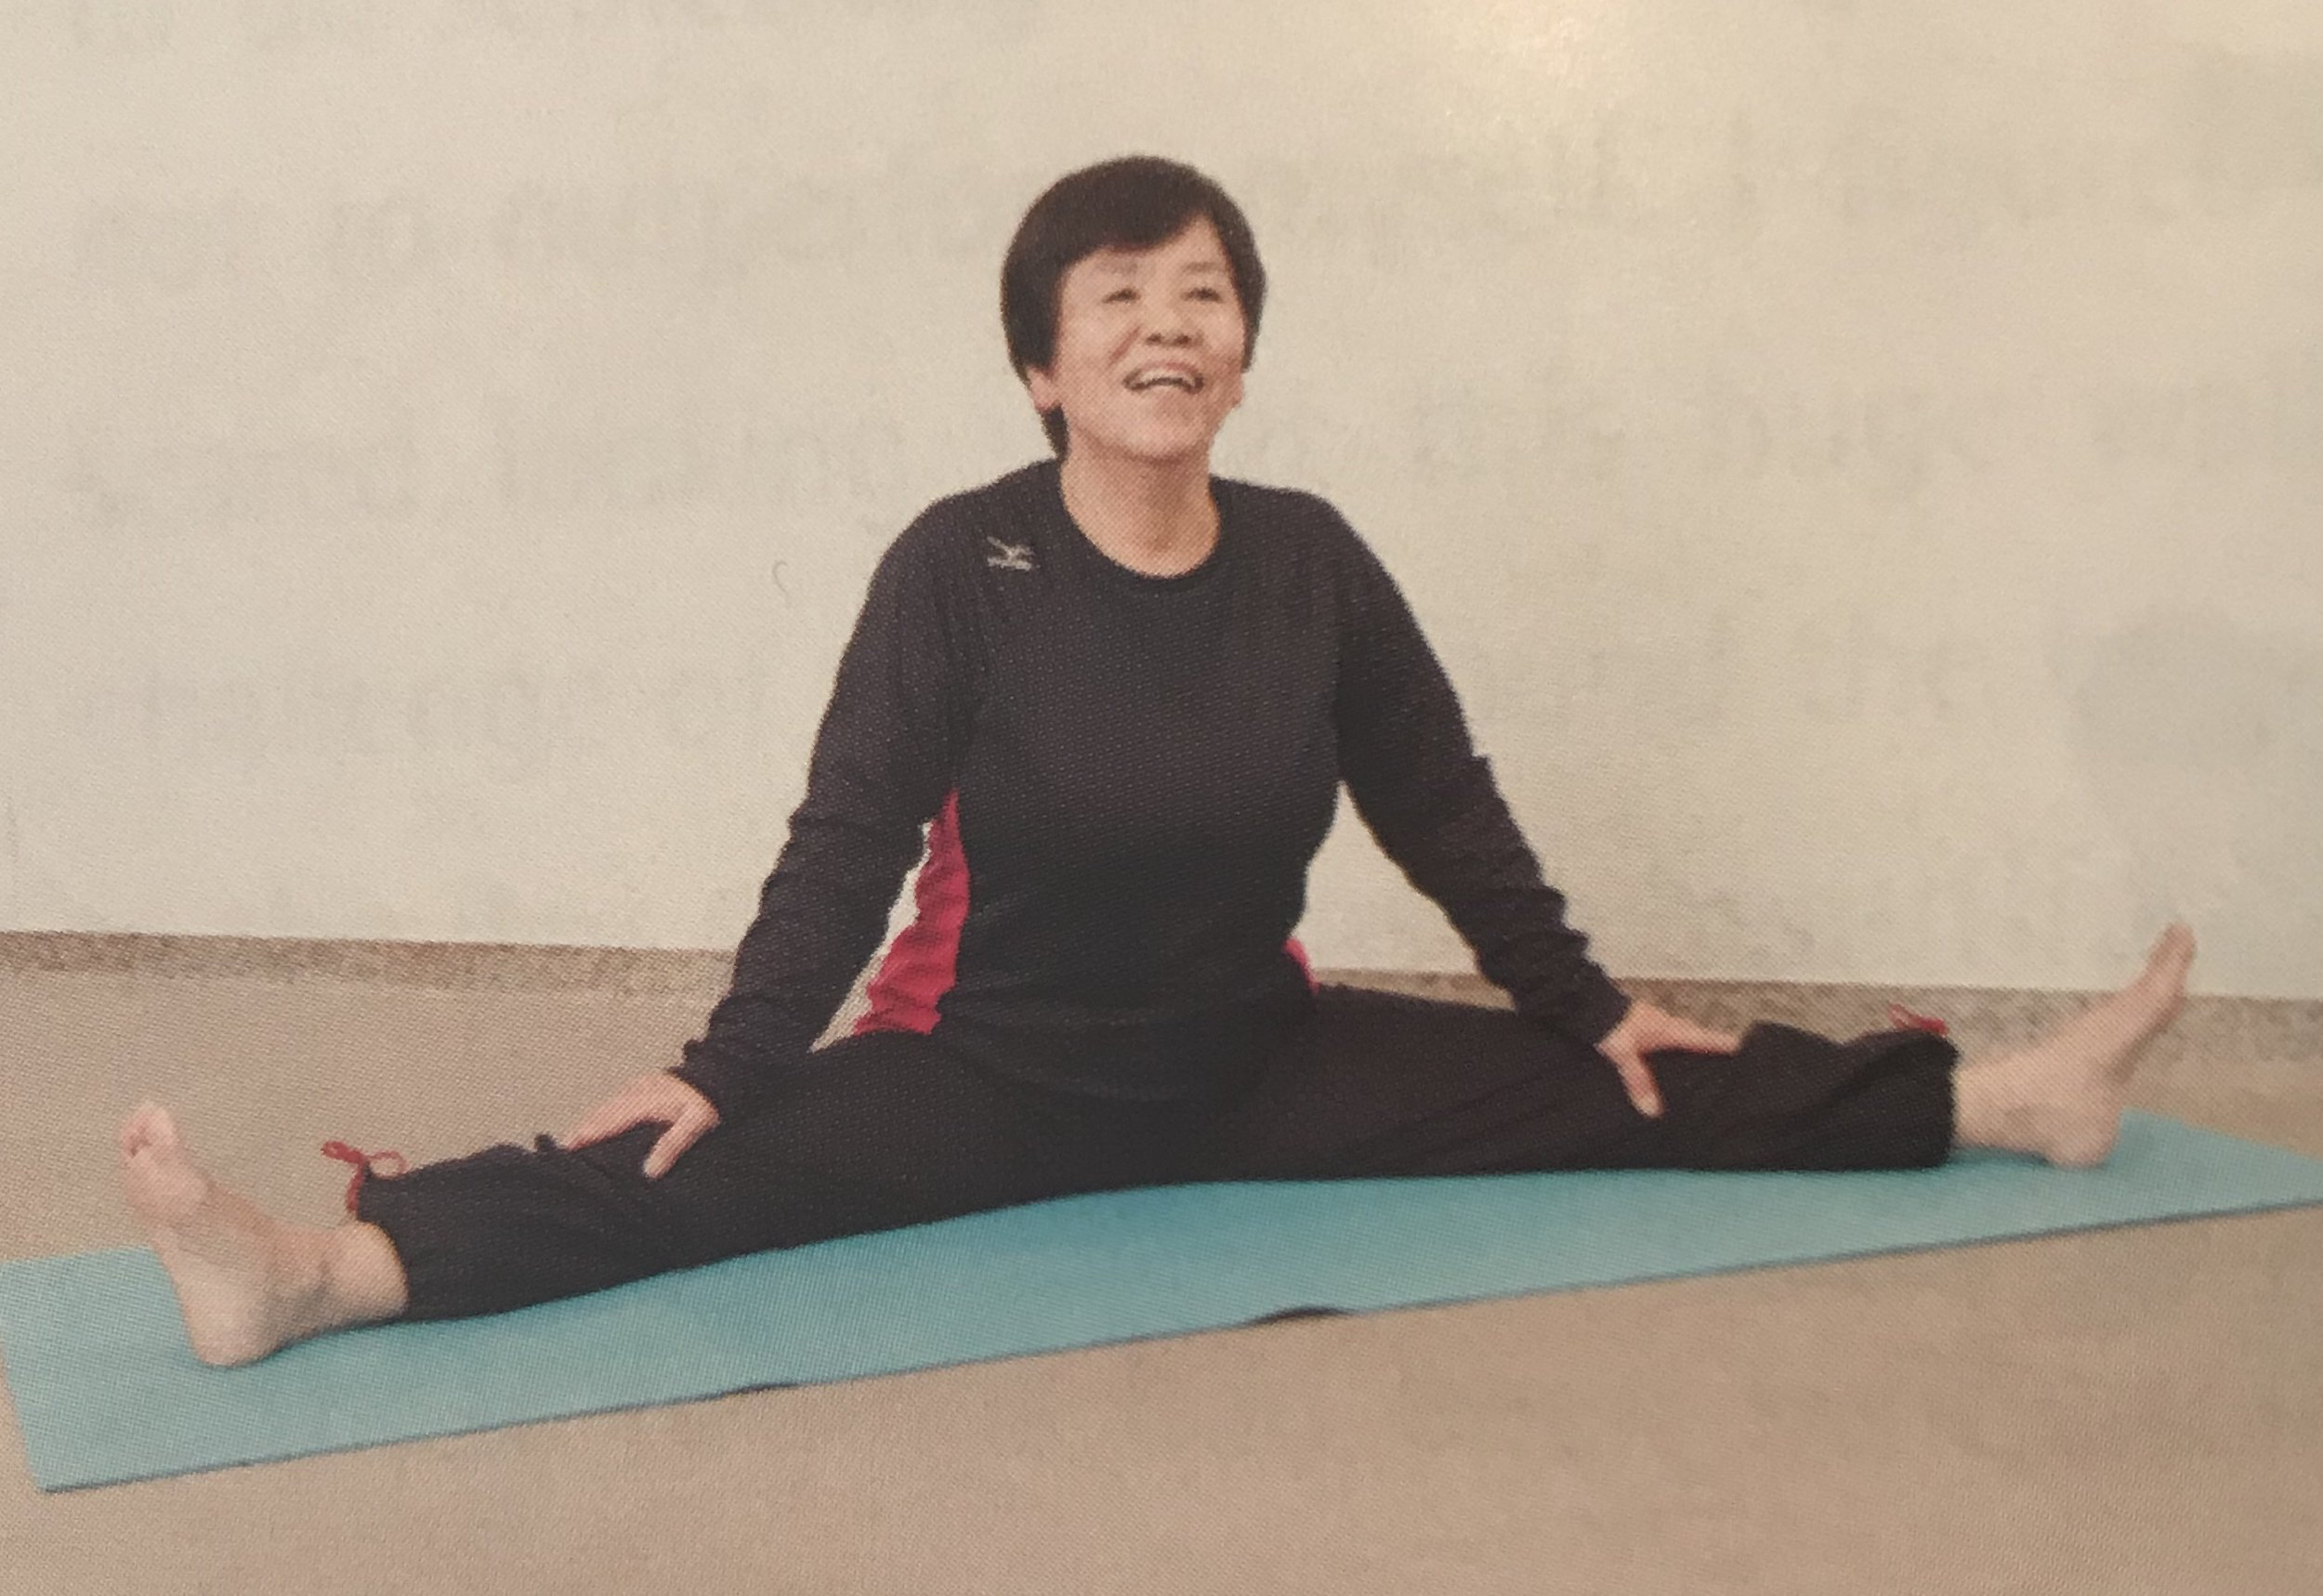 This is a Japanese yoga student called Sugako. She started yoga at age 70 and this is her at 72. It took her two months to achieve this. She's 72. You've got no excuse!!